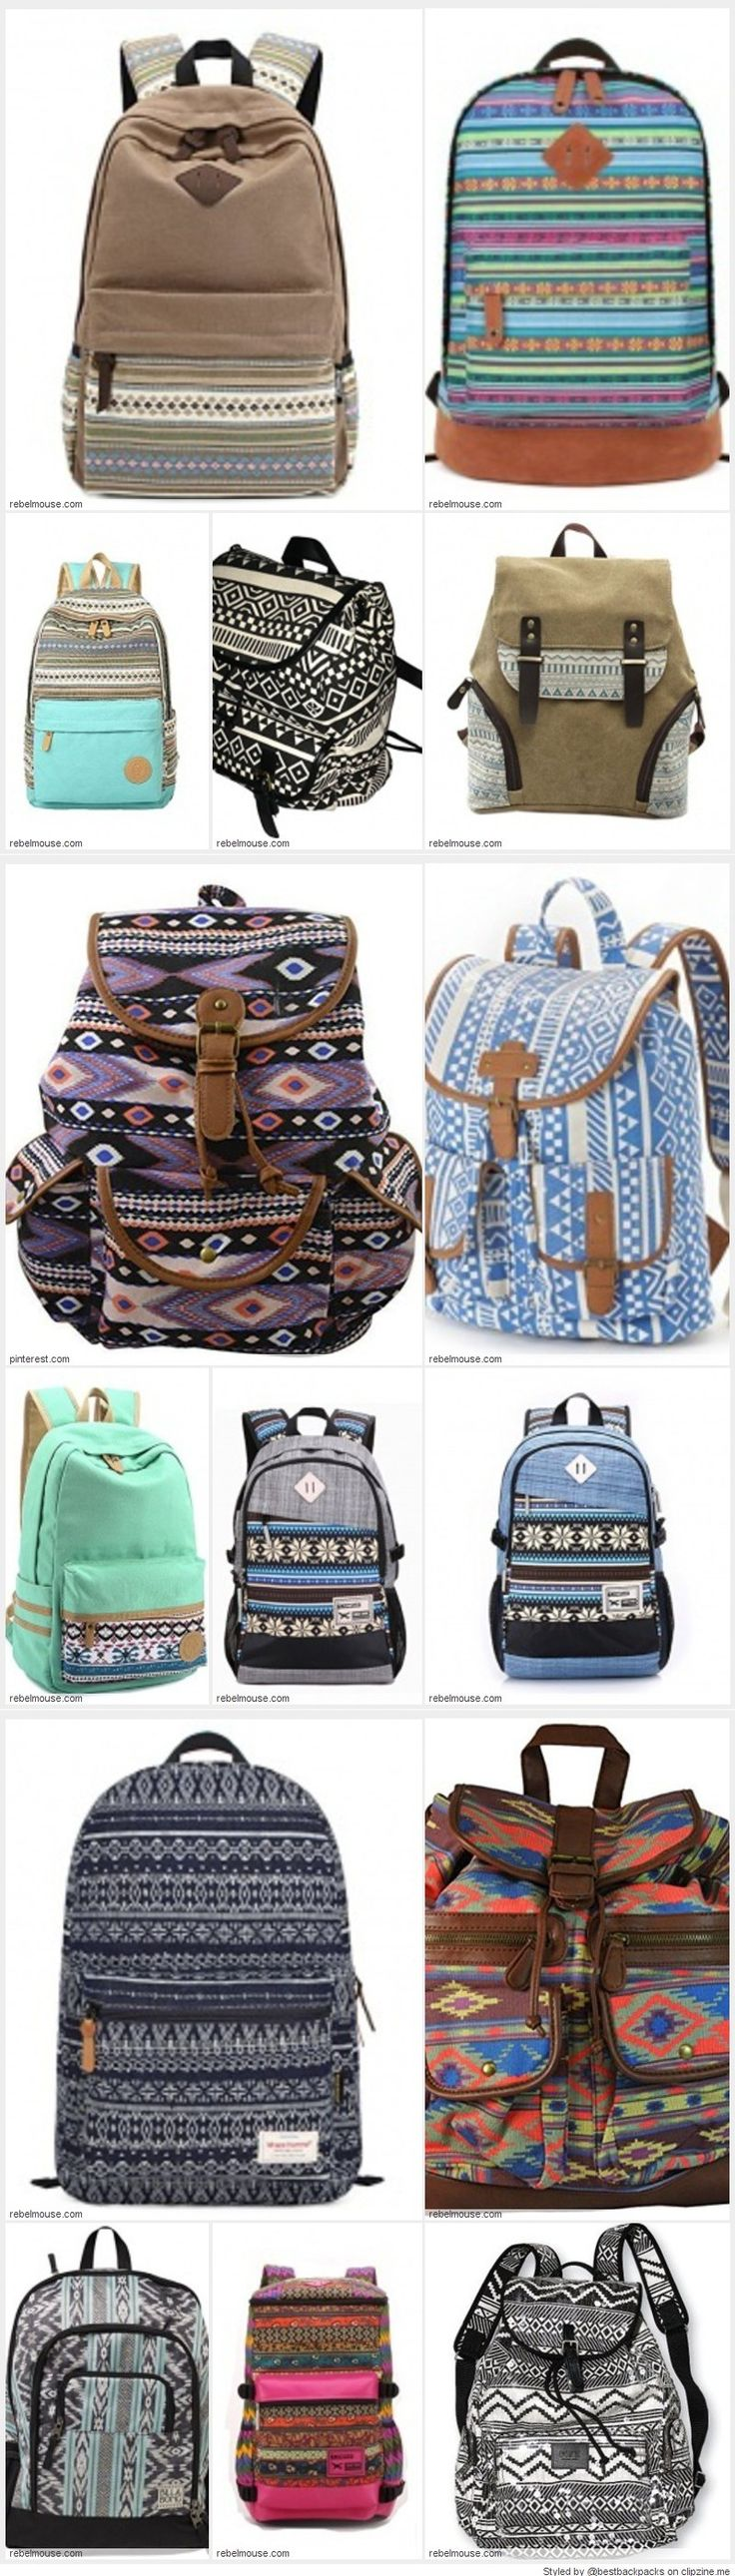 Cool Aztec Backpack Designs for School  - Best Styles